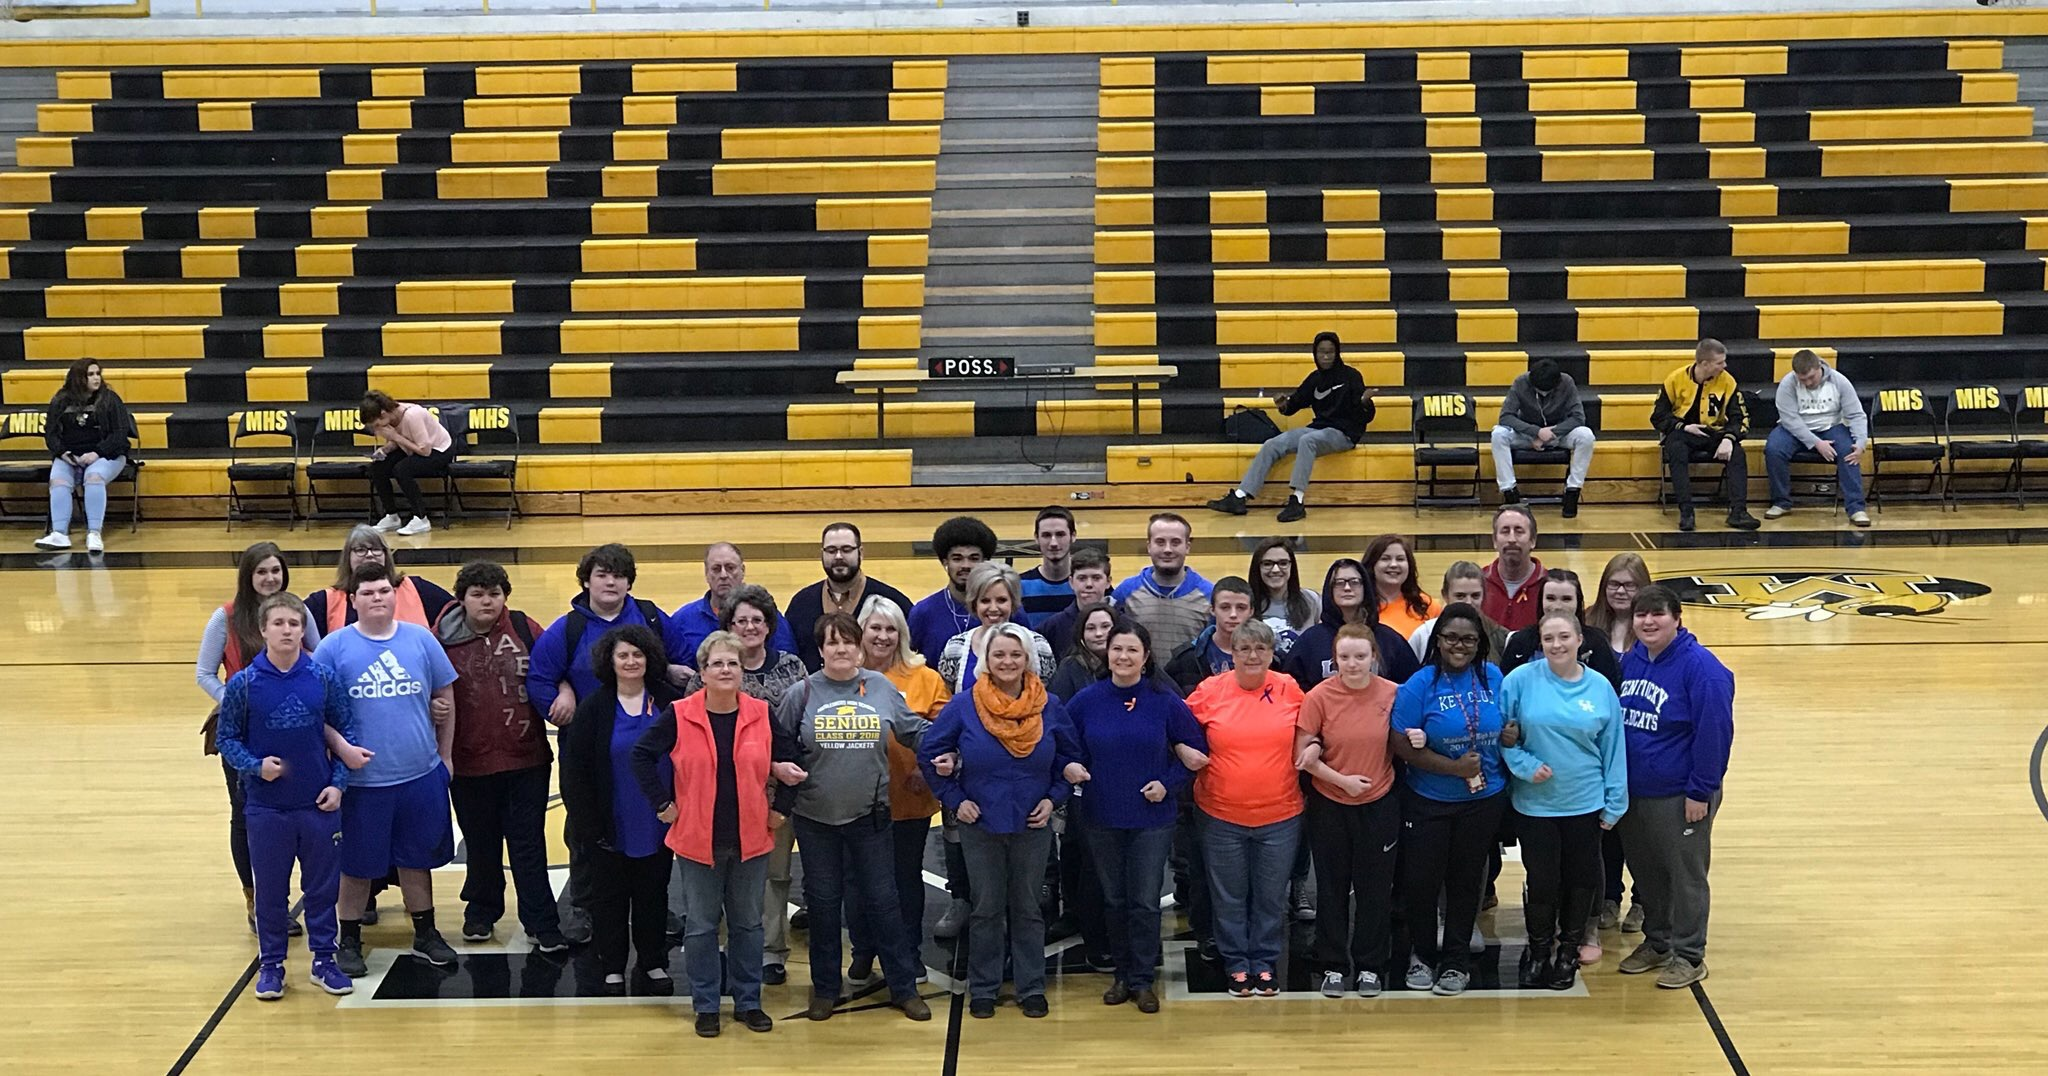 MHS supports Marshall Co